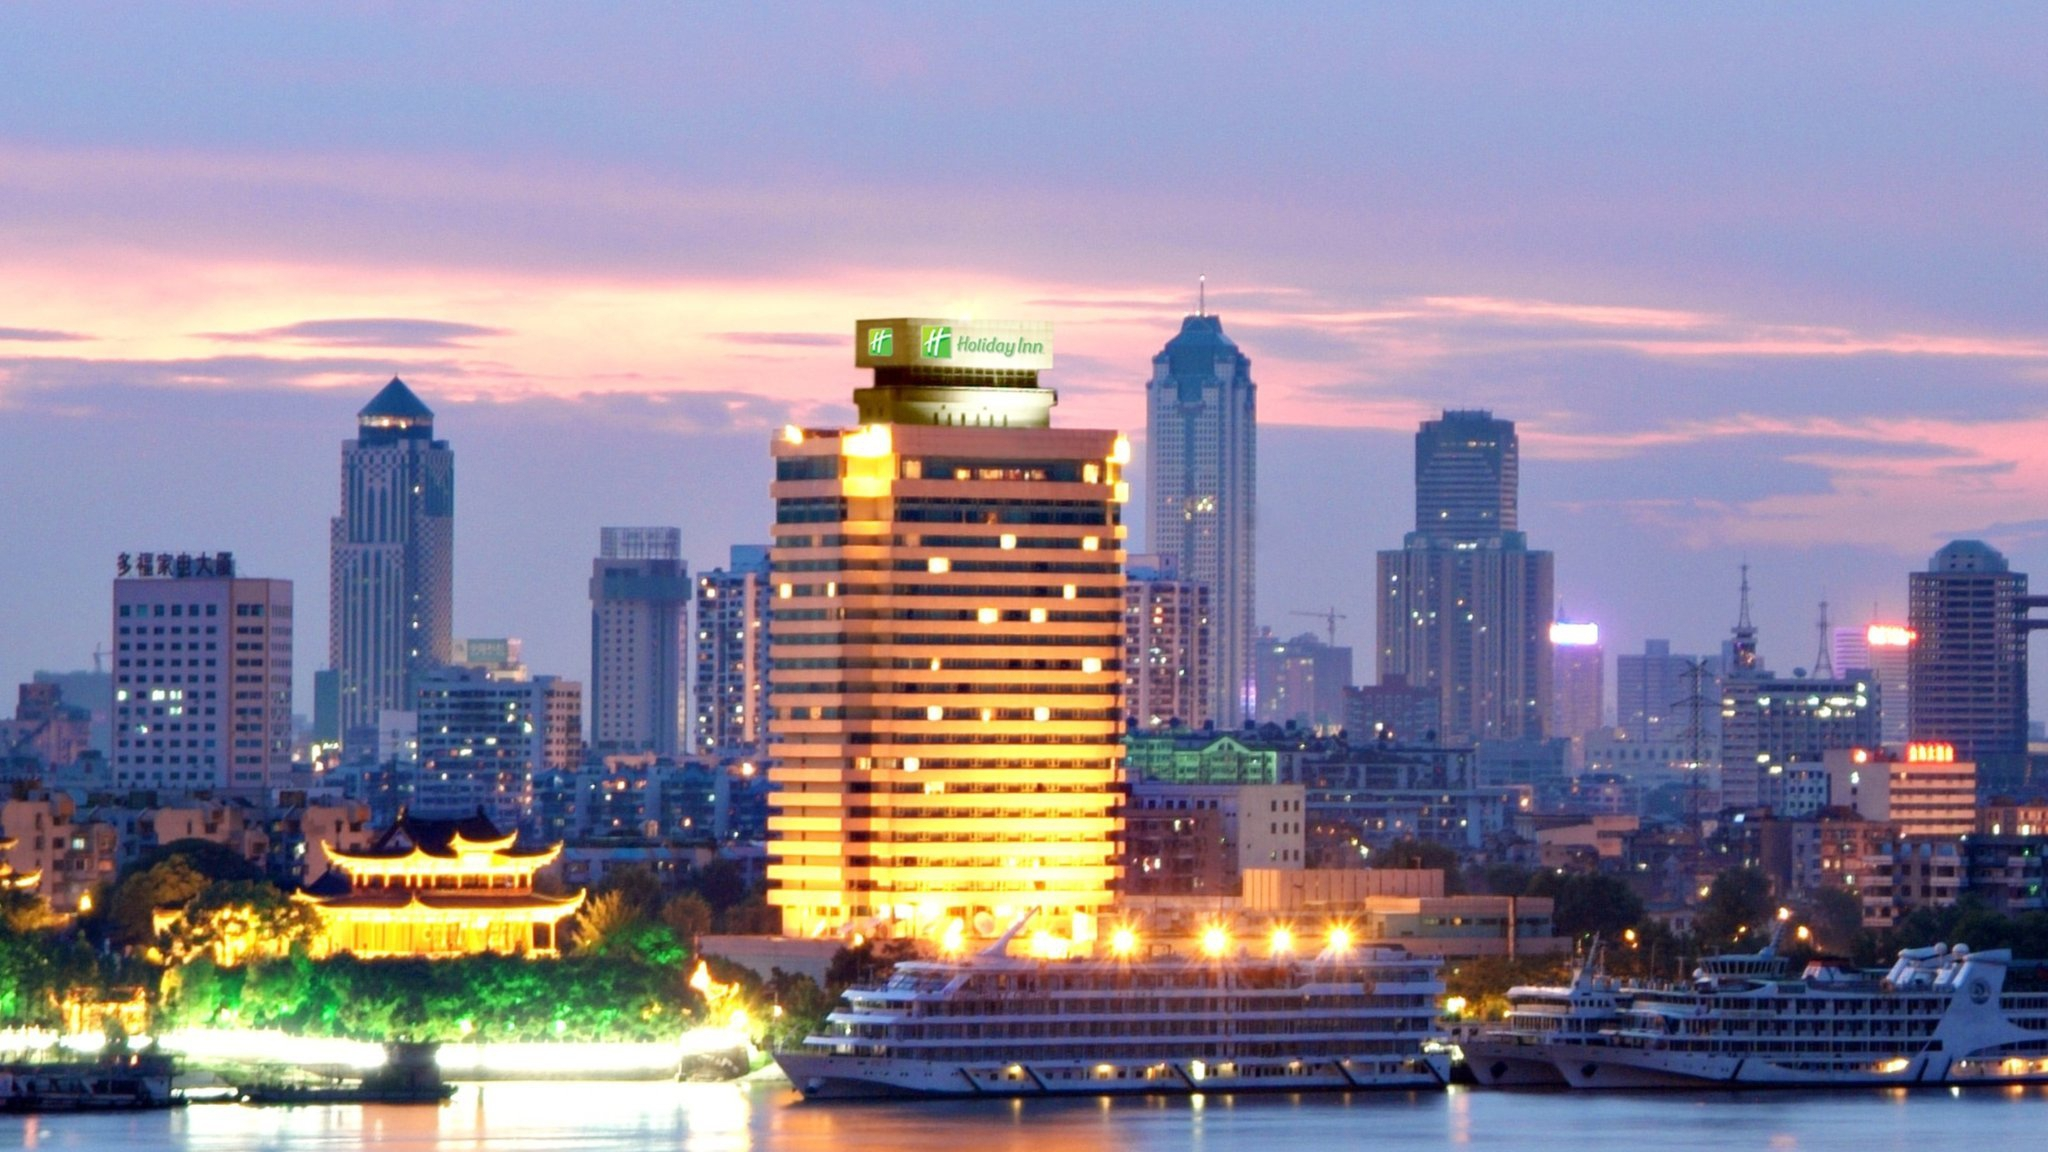 Wuhan Images